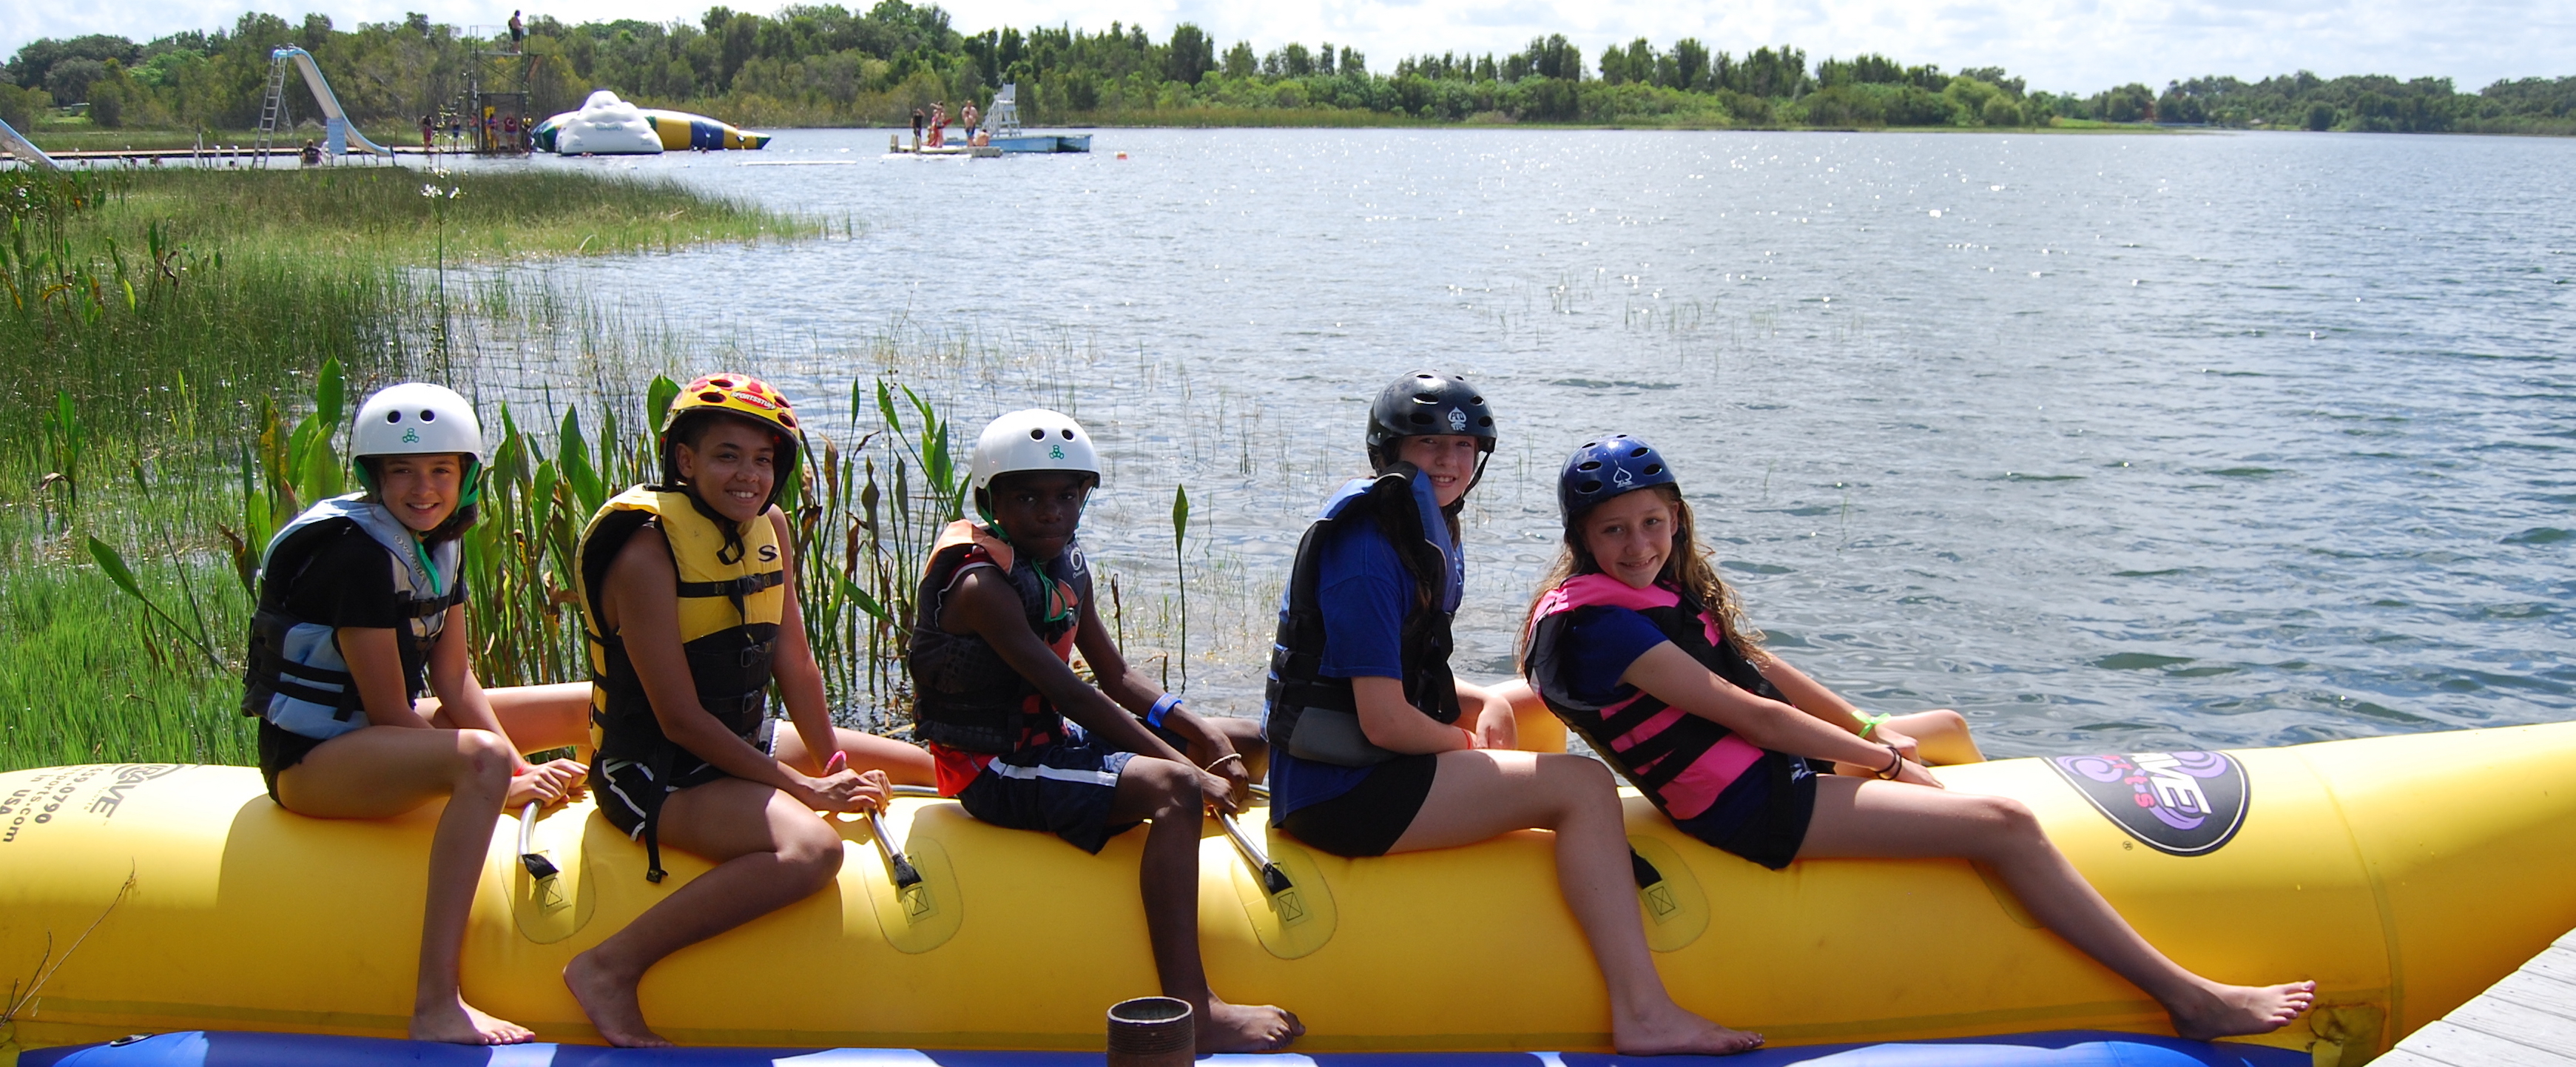 Slideshow of Lake Aurora Christian Camp